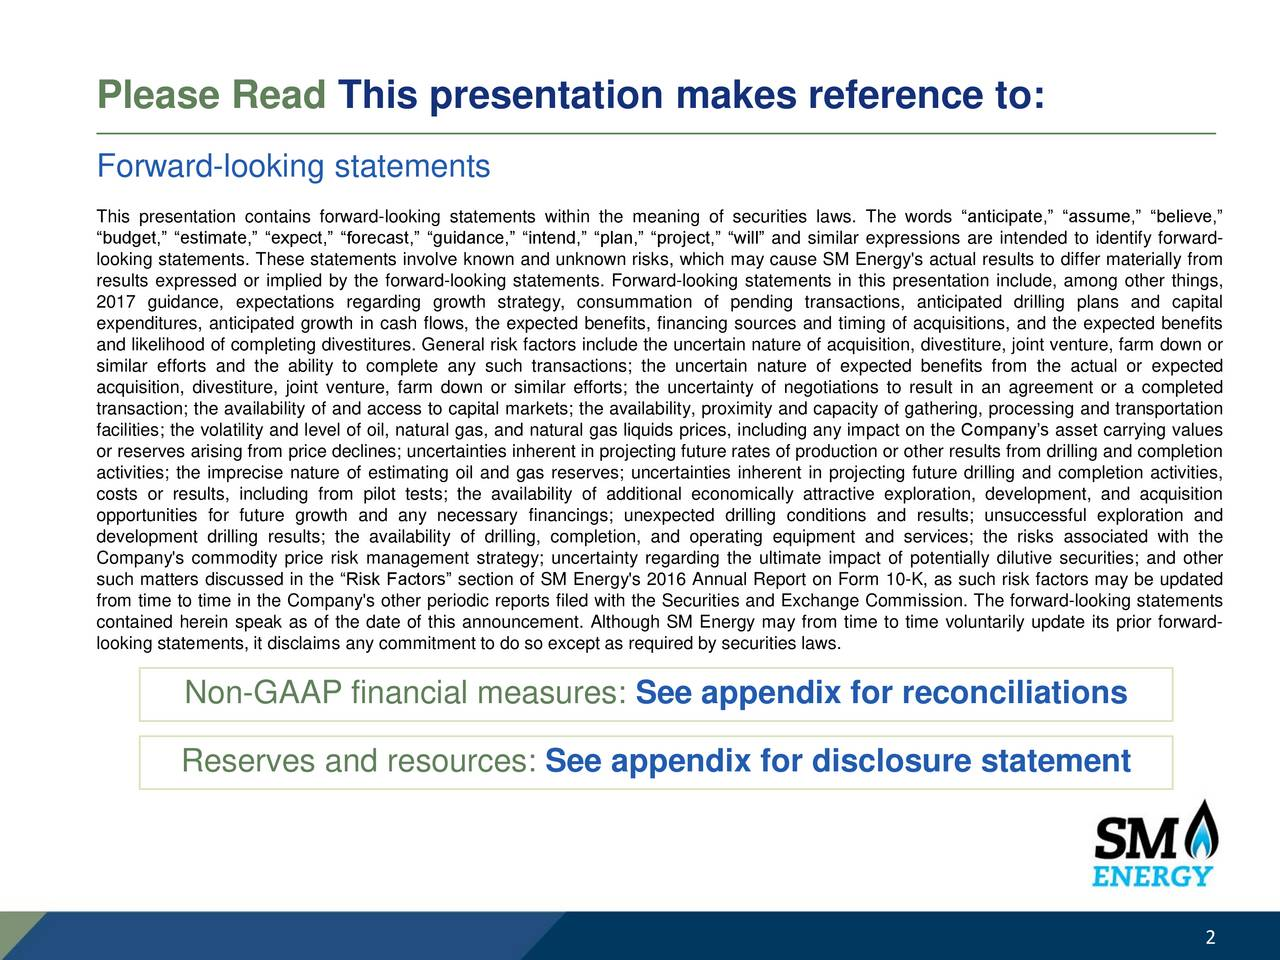 Forward-looking statements This presentation contains forward-looking statements within the meaning of securities laws. The words anticipate, assume, believe, budget, estimate, expect, forecast, guidance, intend, plan, project, will and similar expressions are intended to identify forward- looking statements. These statements involve known and unknown risks, which may cause SM Energy's actual results to differ materially from results expressed or implied by the forward-looking statements. Forward-looking statements in this presentation include, among other things, 2017 guidance, expectations regarding growth strategy, consummation of pending transactions, anticipated drilling plans and capital expenditures, anticipated growth in cash flows, the expected benefits, financing sources and timing of acquisitions, and the expected benefits and likelihood of completing divestitures. General risk factors include the uncertain nature of acquisition, divestiture, joint venture, farm down or similar efforts and the ability to complete any such transactions; the uncertain nature of expected benefits from the actual or expected acquisition, divestiture, joint venture, farm down or similar efforts; the uncertainty of negotiations to result in an agreement or a completed transaction; the availability of and access to capital markets; the availability, proximity and capacity of gathering, processing and transportation facilities; the volatility and level of oil, natural gas, and natural gas liquids prices, including any impact on the Companys asset carrying values or reserves arising from price declines; uncertainties inherent in projecting future rates of production or other results from drilling and completion activities; the imprecise nature of estimating oil and gas reserves; uncertainties inherent in projecting future drilling and completion activities, costs or results, including from pilot tests; the availability of additional economically attractive exploration, development, and acquisition opportunities for future growth and any necessary financings; unexpected drilling conditions and results; unsuccessful exploration and development drilling results; the availability of drilling, completion, and operating equipment and services; the risks associated with the Company's commodity price risk management strategy; uncertainty regarding the ultimate impact of potentially dilutive securities; and other such matters discussed in the Risk Factors section of SM Energy's 2016 Annual Report on Form 10-K, as such risk factors may be updated from time to time in the Company's other periodic reports filed with the Securities and Exchange Commission. The forward-looking statements contained herein speak as of the date of this announcement. Although SM Energy may from time to time voluntarily update its prior forward- looking statements, it disclaims any commitment to do so except as required by securities laws. Non-GAAP financial measures: See appendix for reconciliations Reserves and resources: See appendix for disclosure statement 2